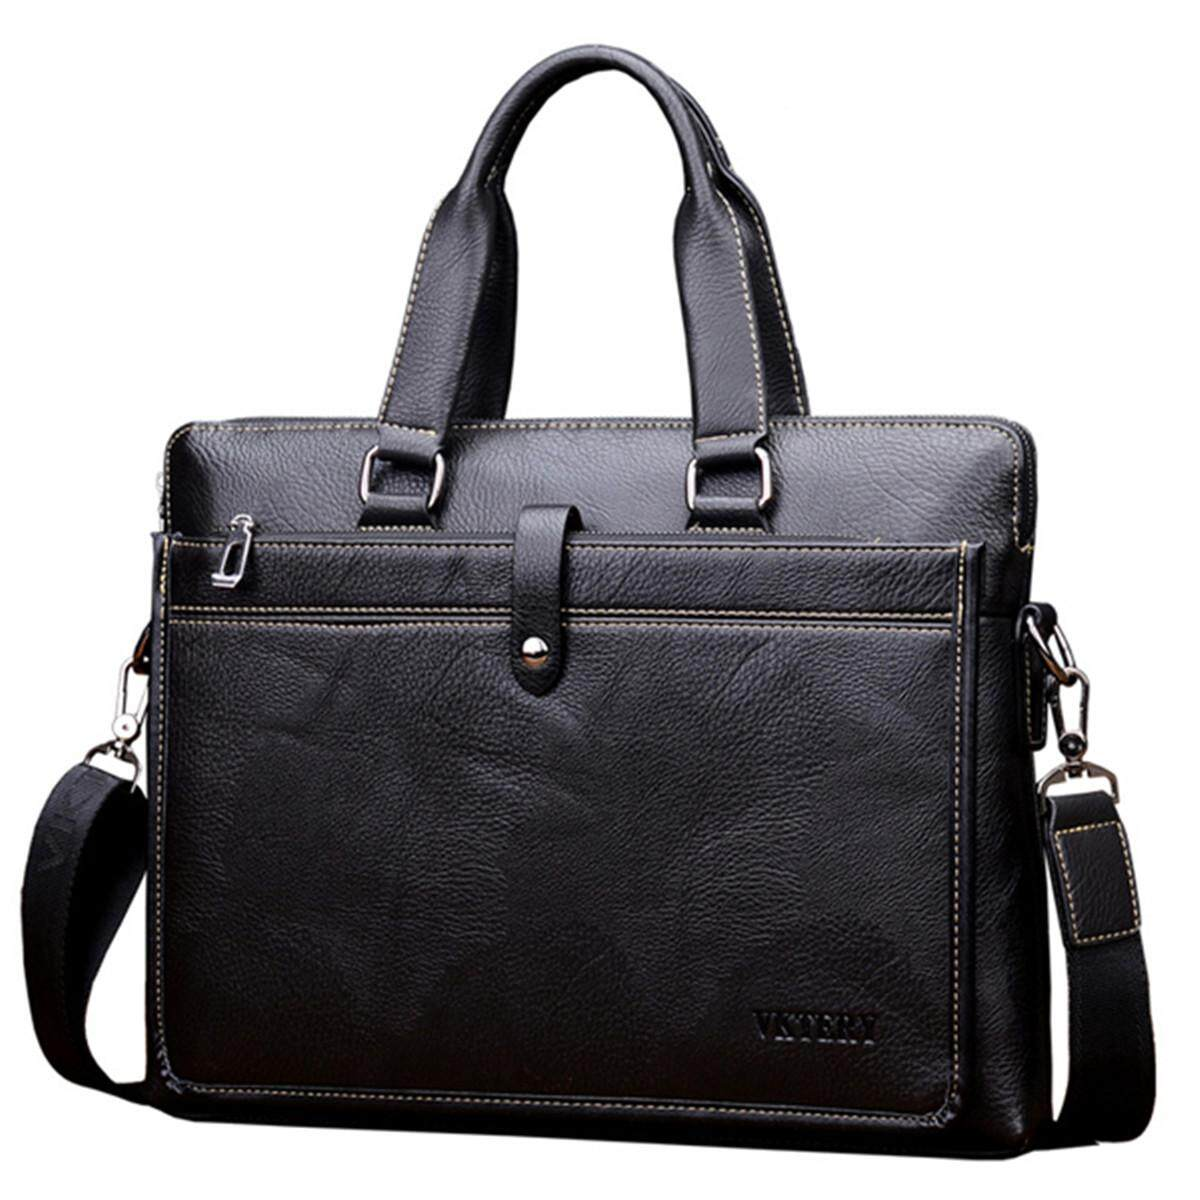 962aac026068 Formal Bags for sale - Formal Bags for Men online brands